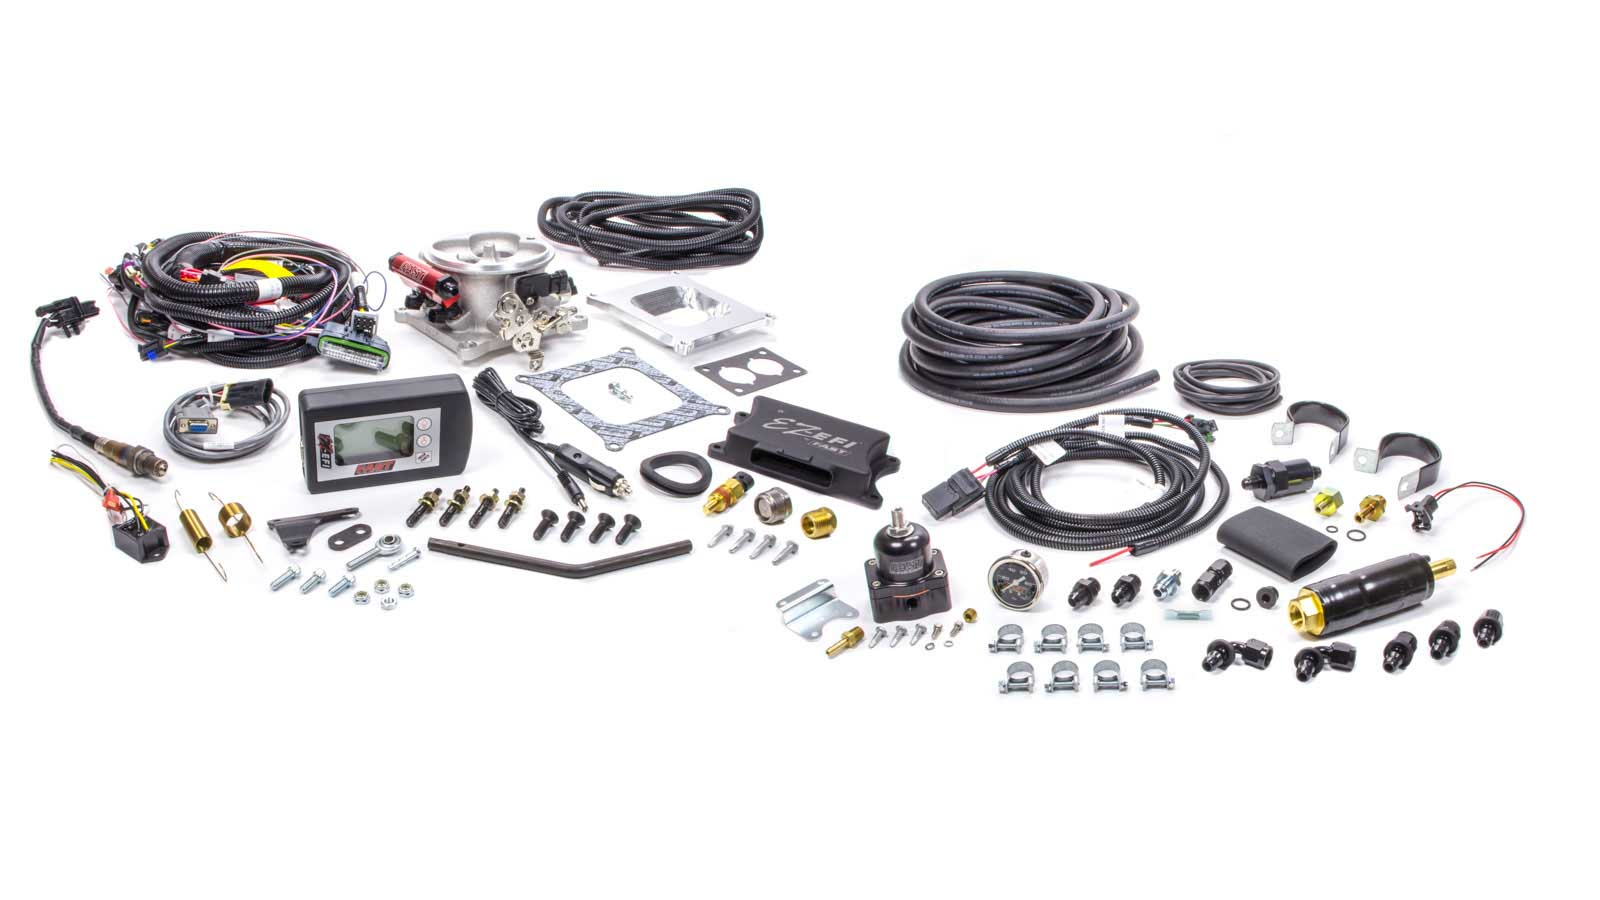 Fast Electronics Cfm Ez Efi Master Fuel Injection Kit